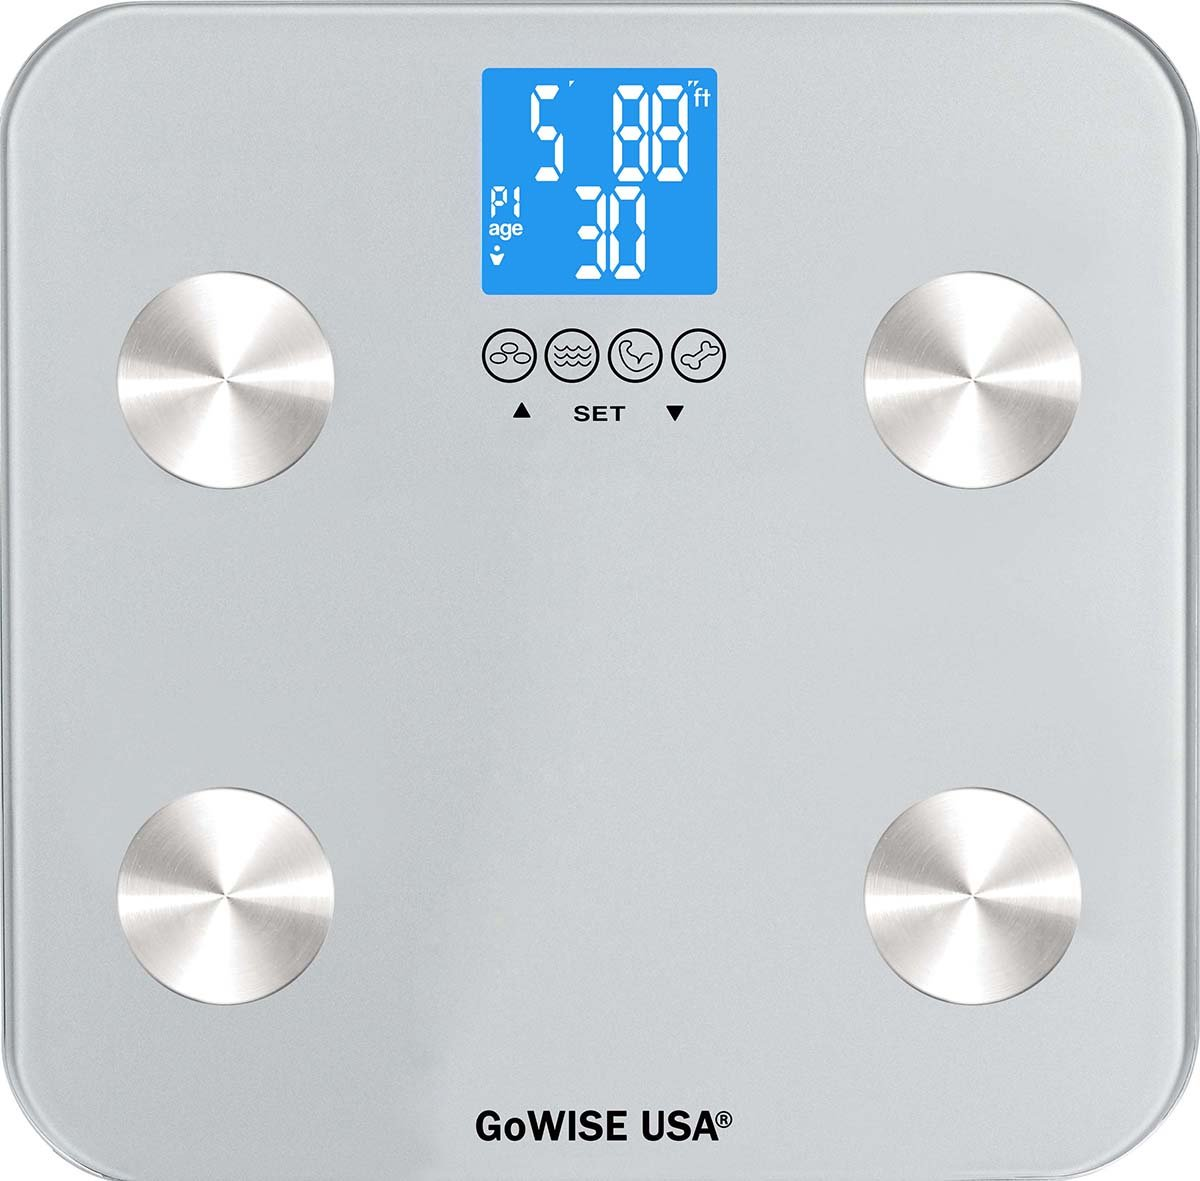 Gowise usa body fat scale with fda approved measures for Gowise usa